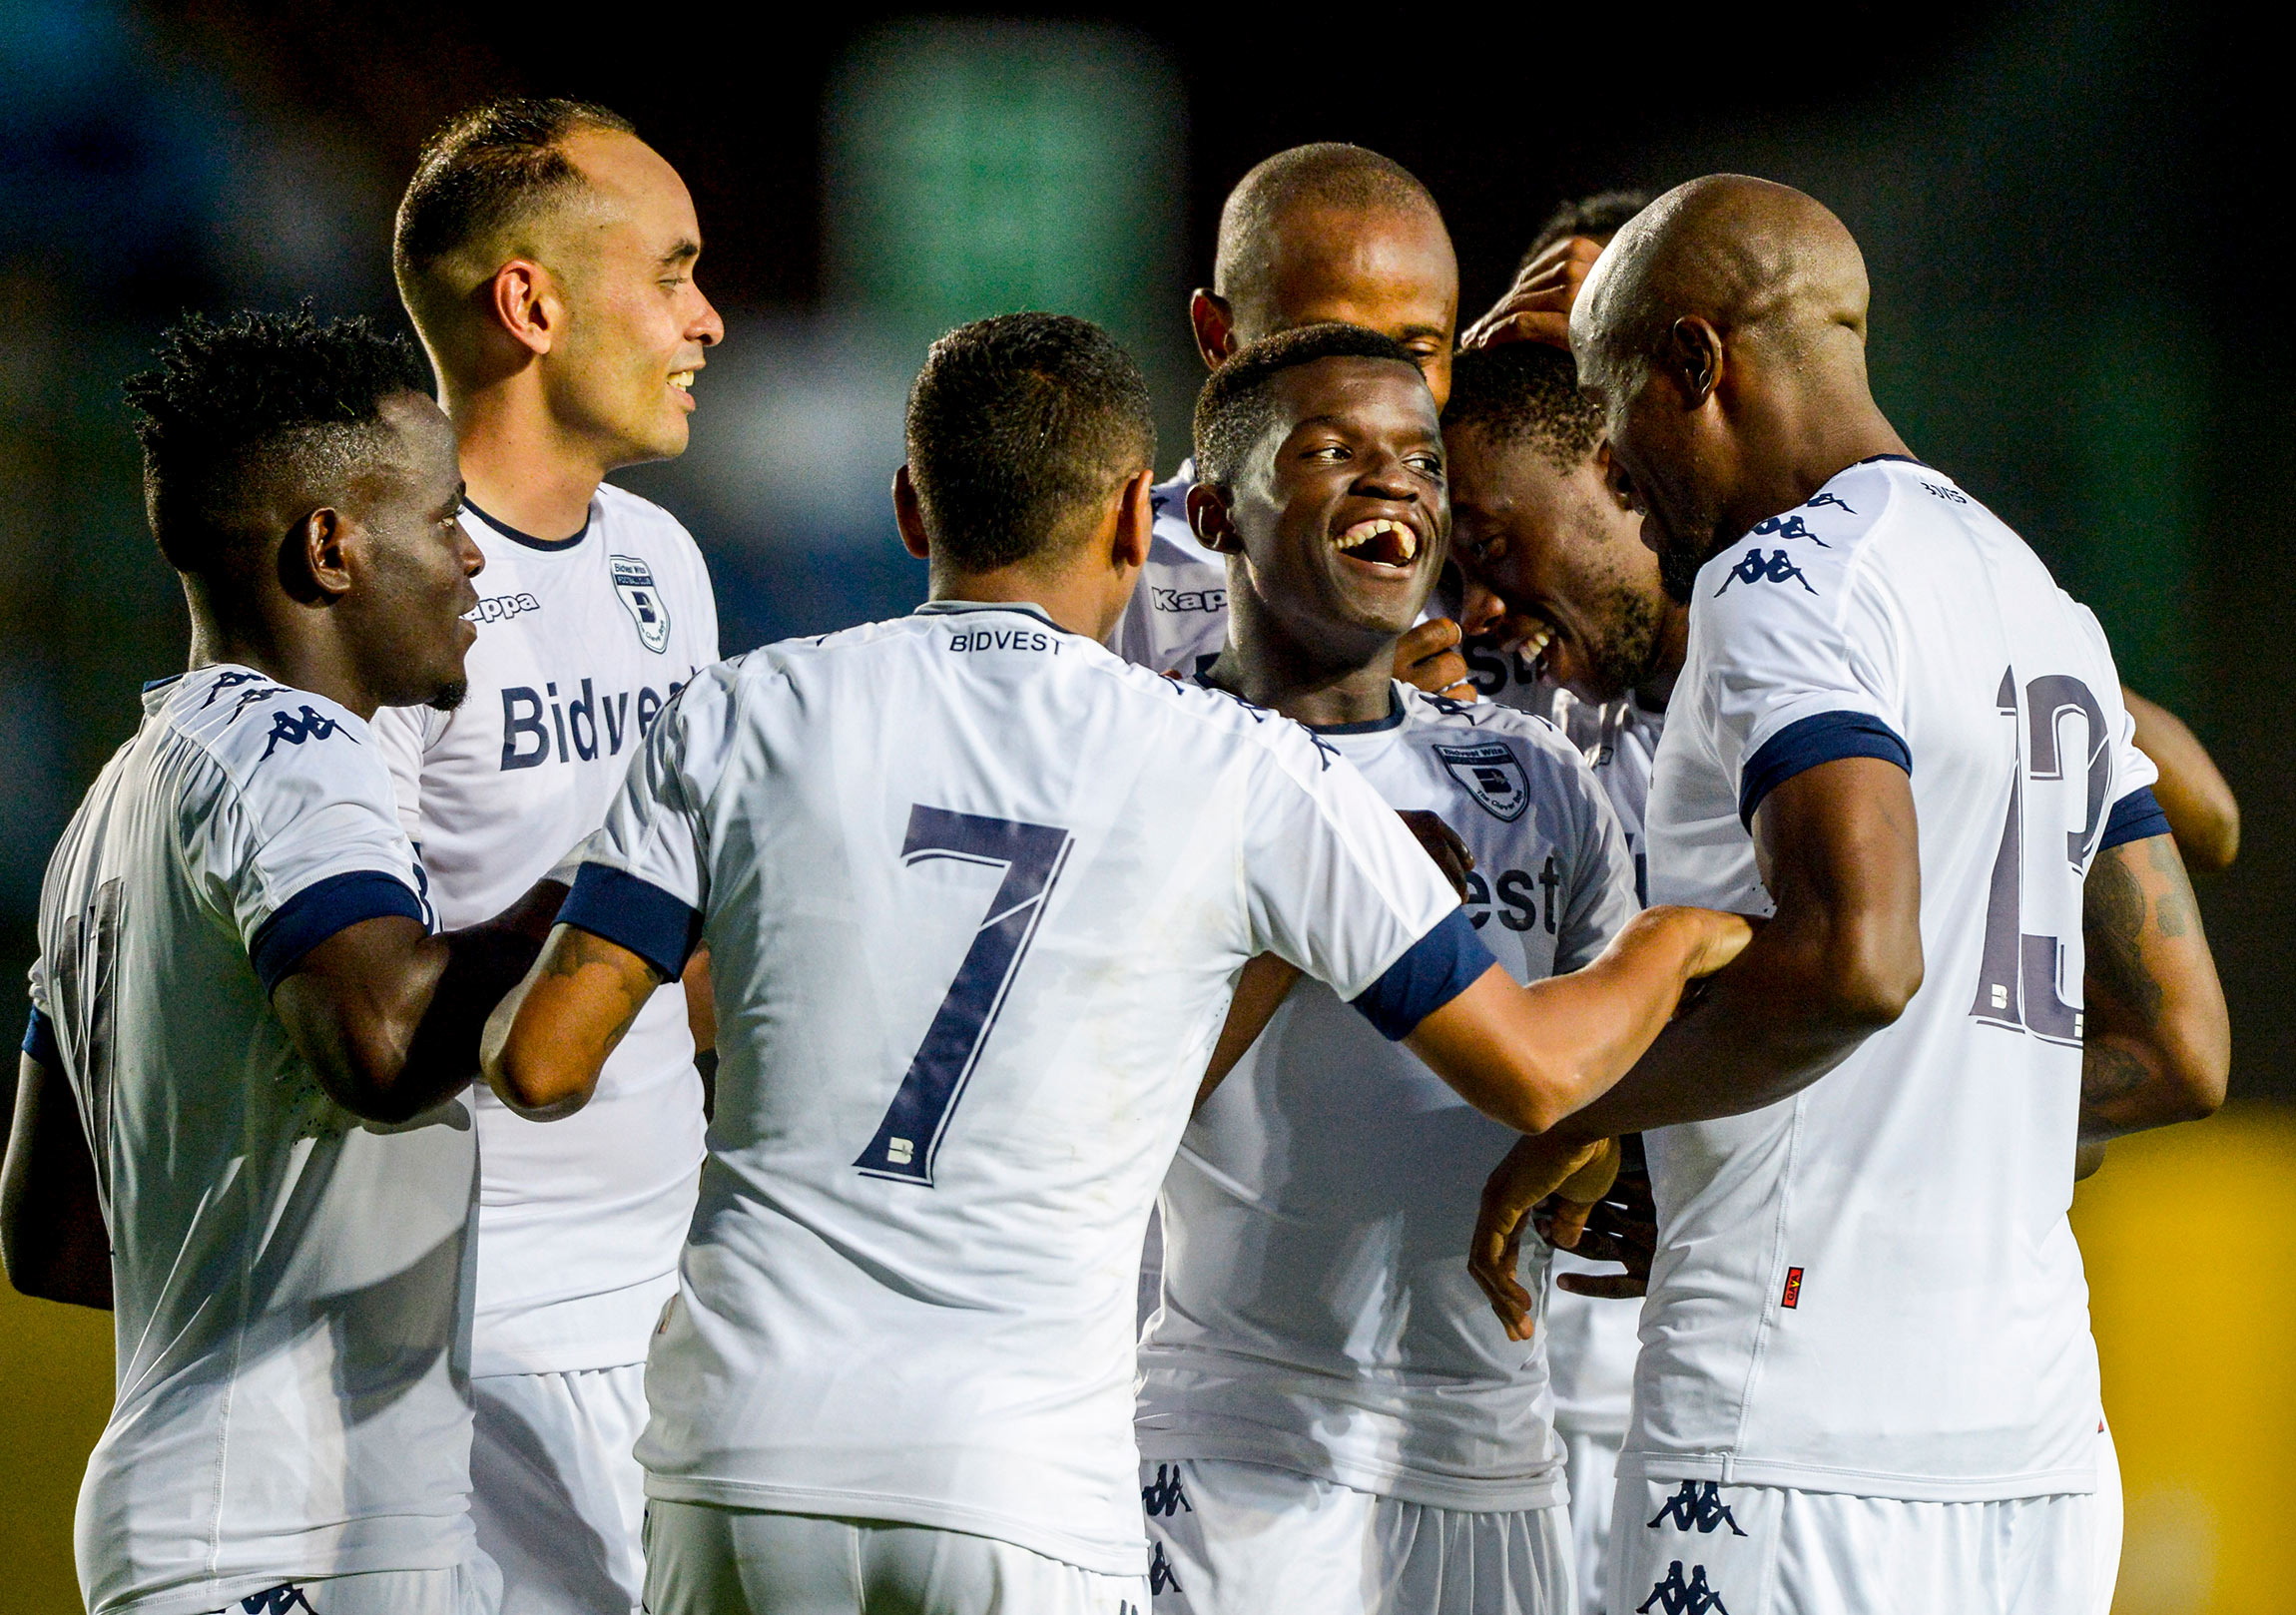 18 February 2017: Sifiso Myeni of Wits celebrates with his teammates after scoring during their CAF Champions League qualifying match against Saint-Louisienne at the Bidvest Stadium in Johannesburg. (Photograph by Sydney Seshibedi/ Gallo Images)